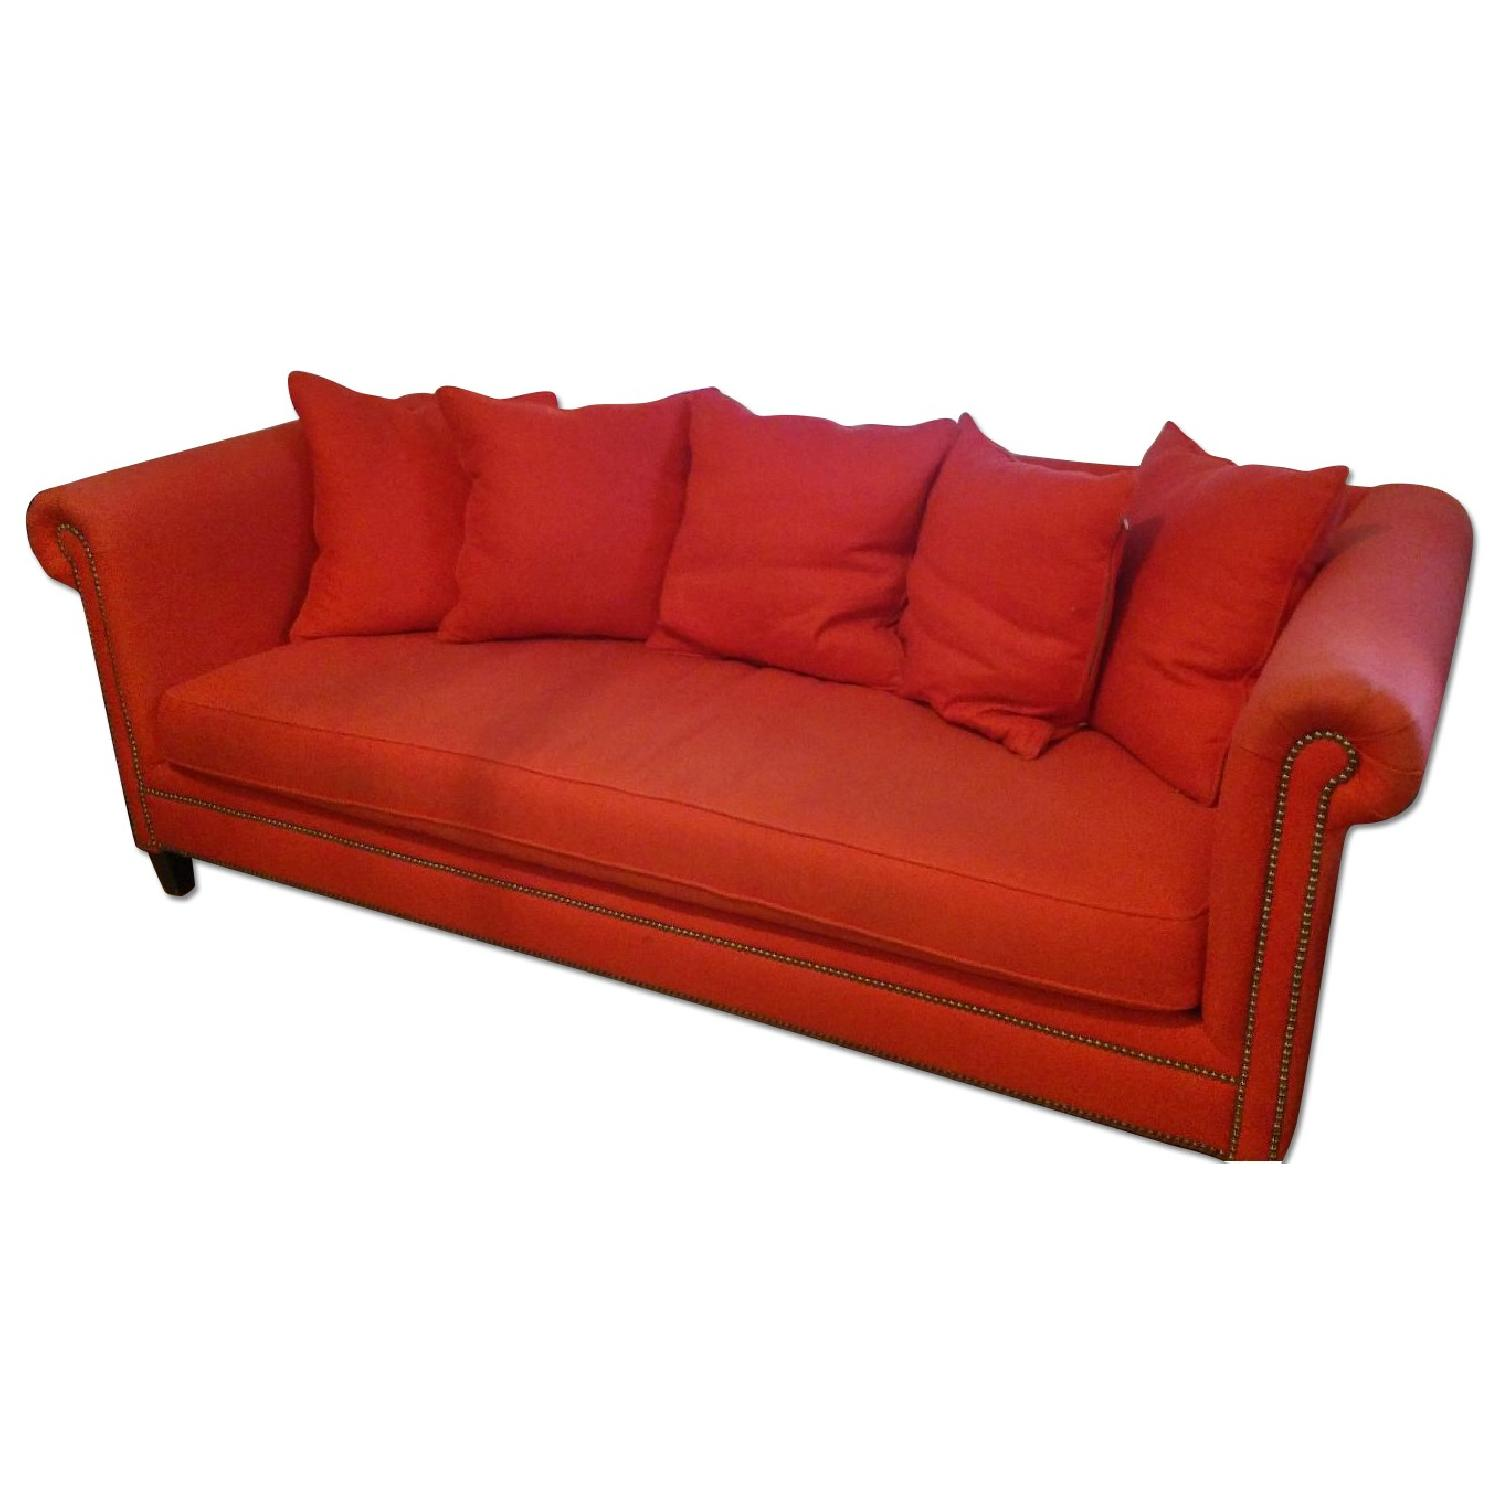 Crate & Barrel Red Couch - image-0